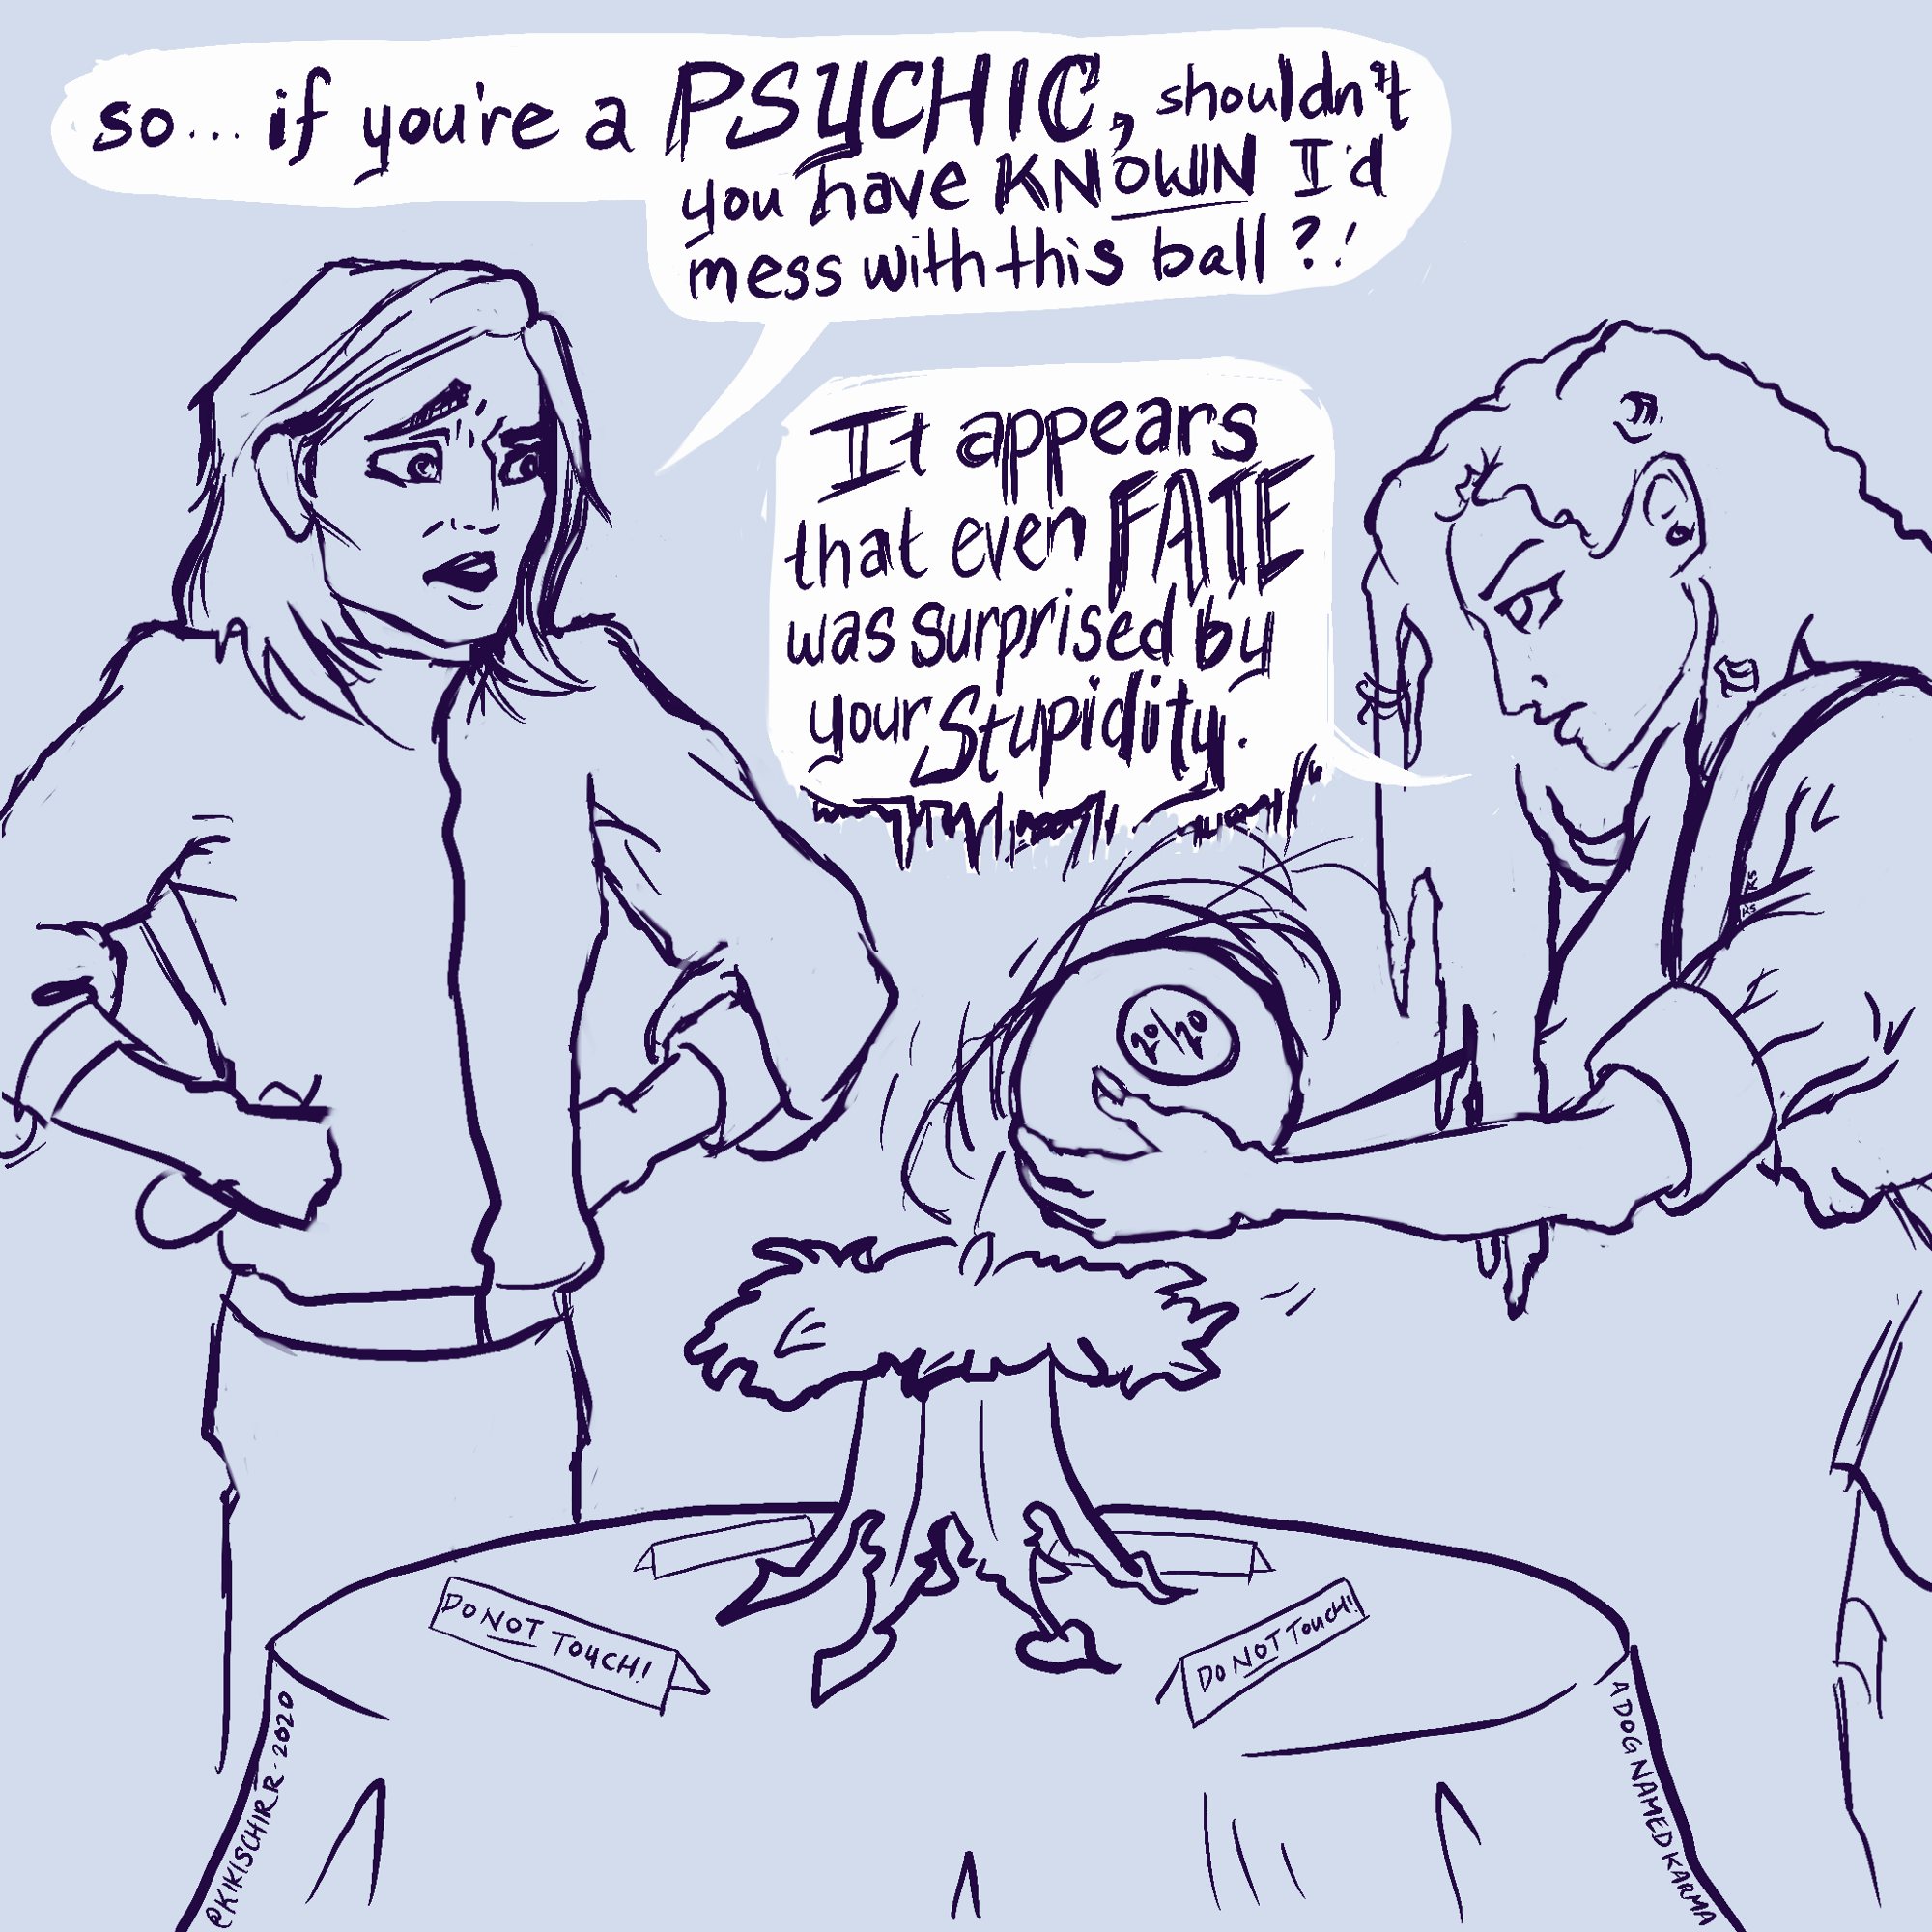 Talako asked why The Psychic was surprised he touched the Magic Ball, and they said even fate underestimated his stupidity.